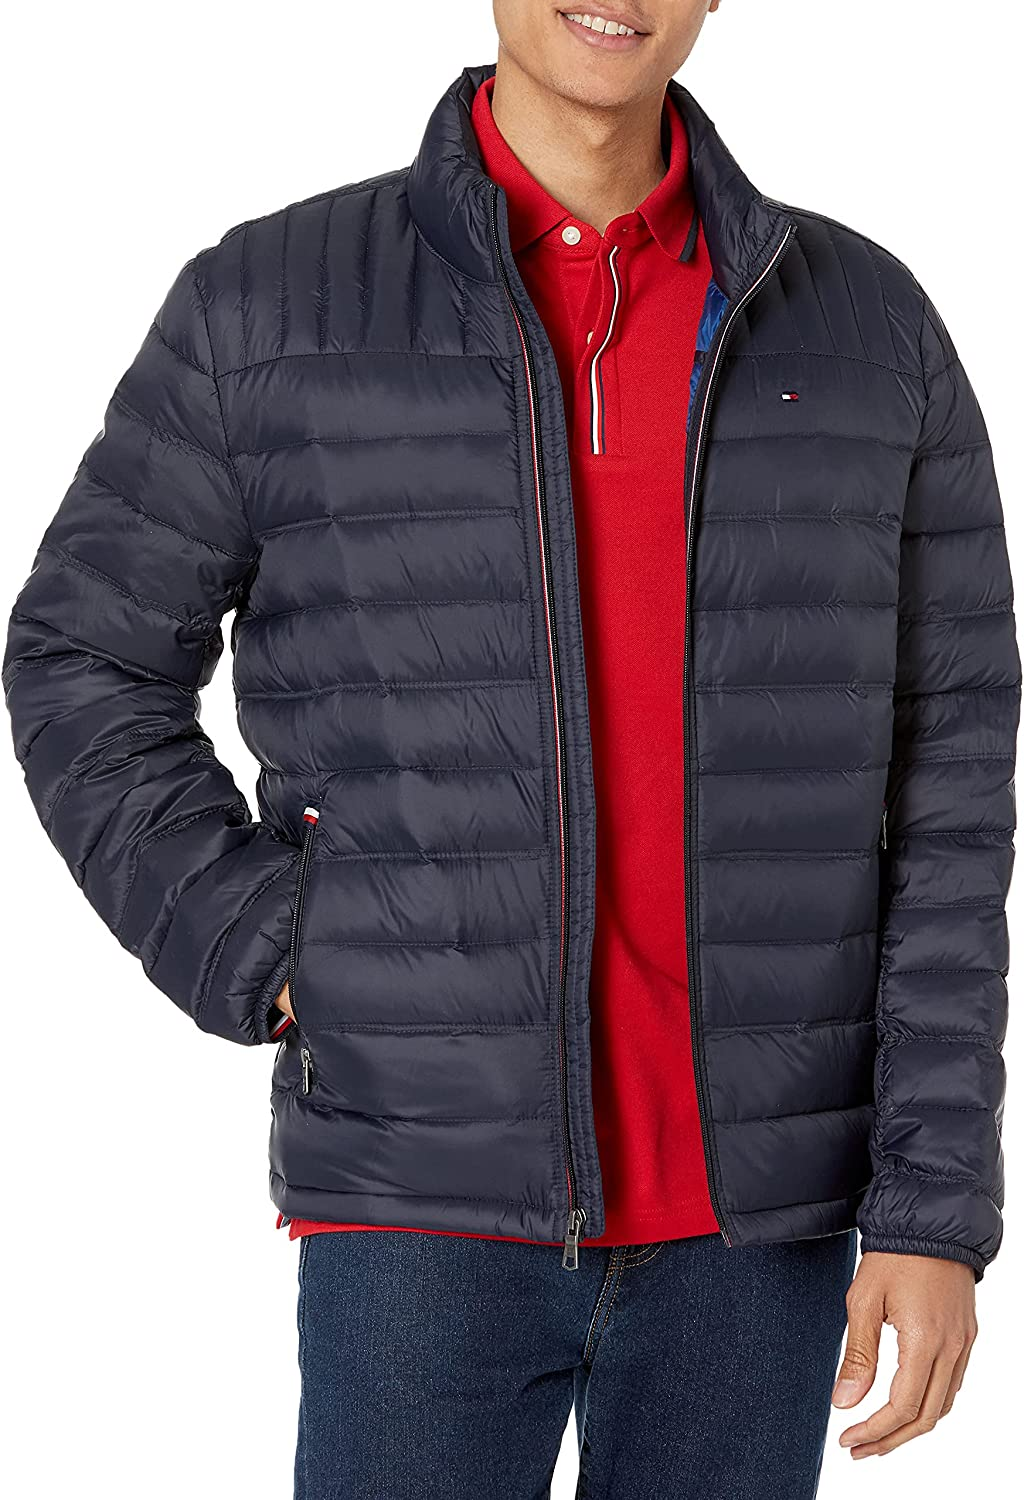 Credence Tommy Hilfiger Men's Manufacturer regenerated product Real Down Packable Jacket Puffer Insulated